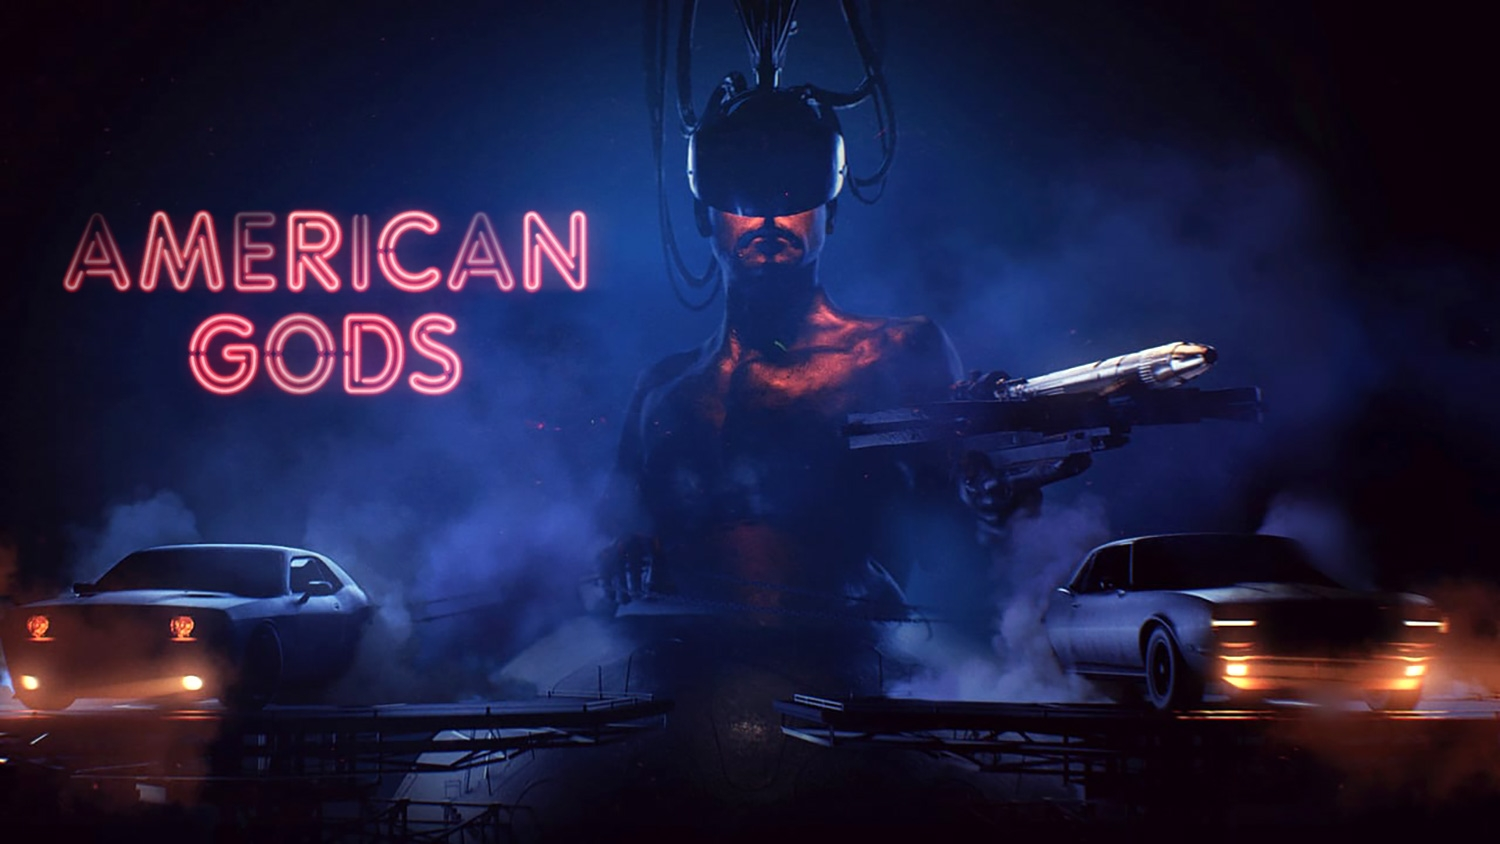 Patrick Clair on creating American Gods' iconic title sequence